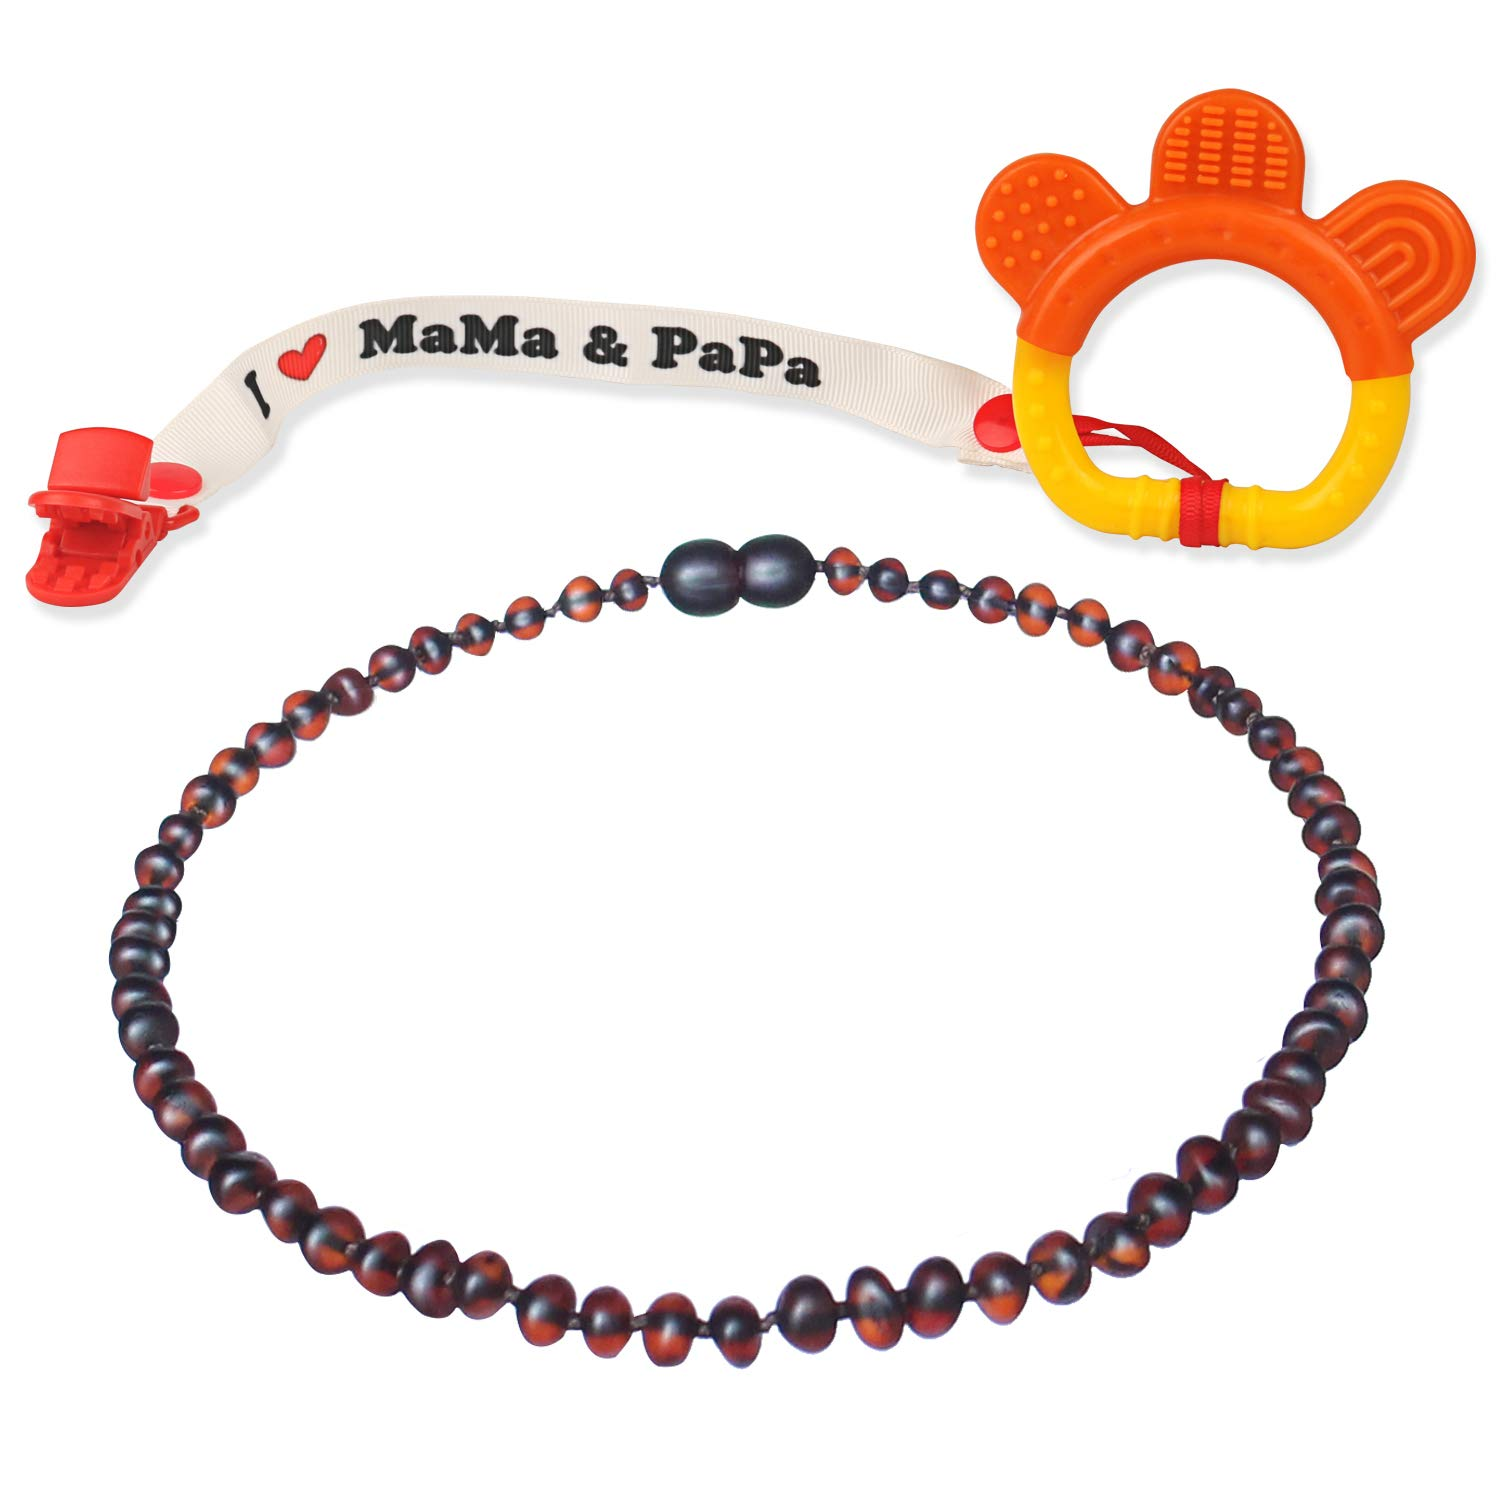 Baltic Amber Teething Necklace for Babies (Unisex - Raw Cherry - 12.5 Inches) - Anti Flammatory, Drooling & Teething Pain Reduce Properties - Natural Raw Baltic Jewelry with Highest Quality by QUALEAP AMBER